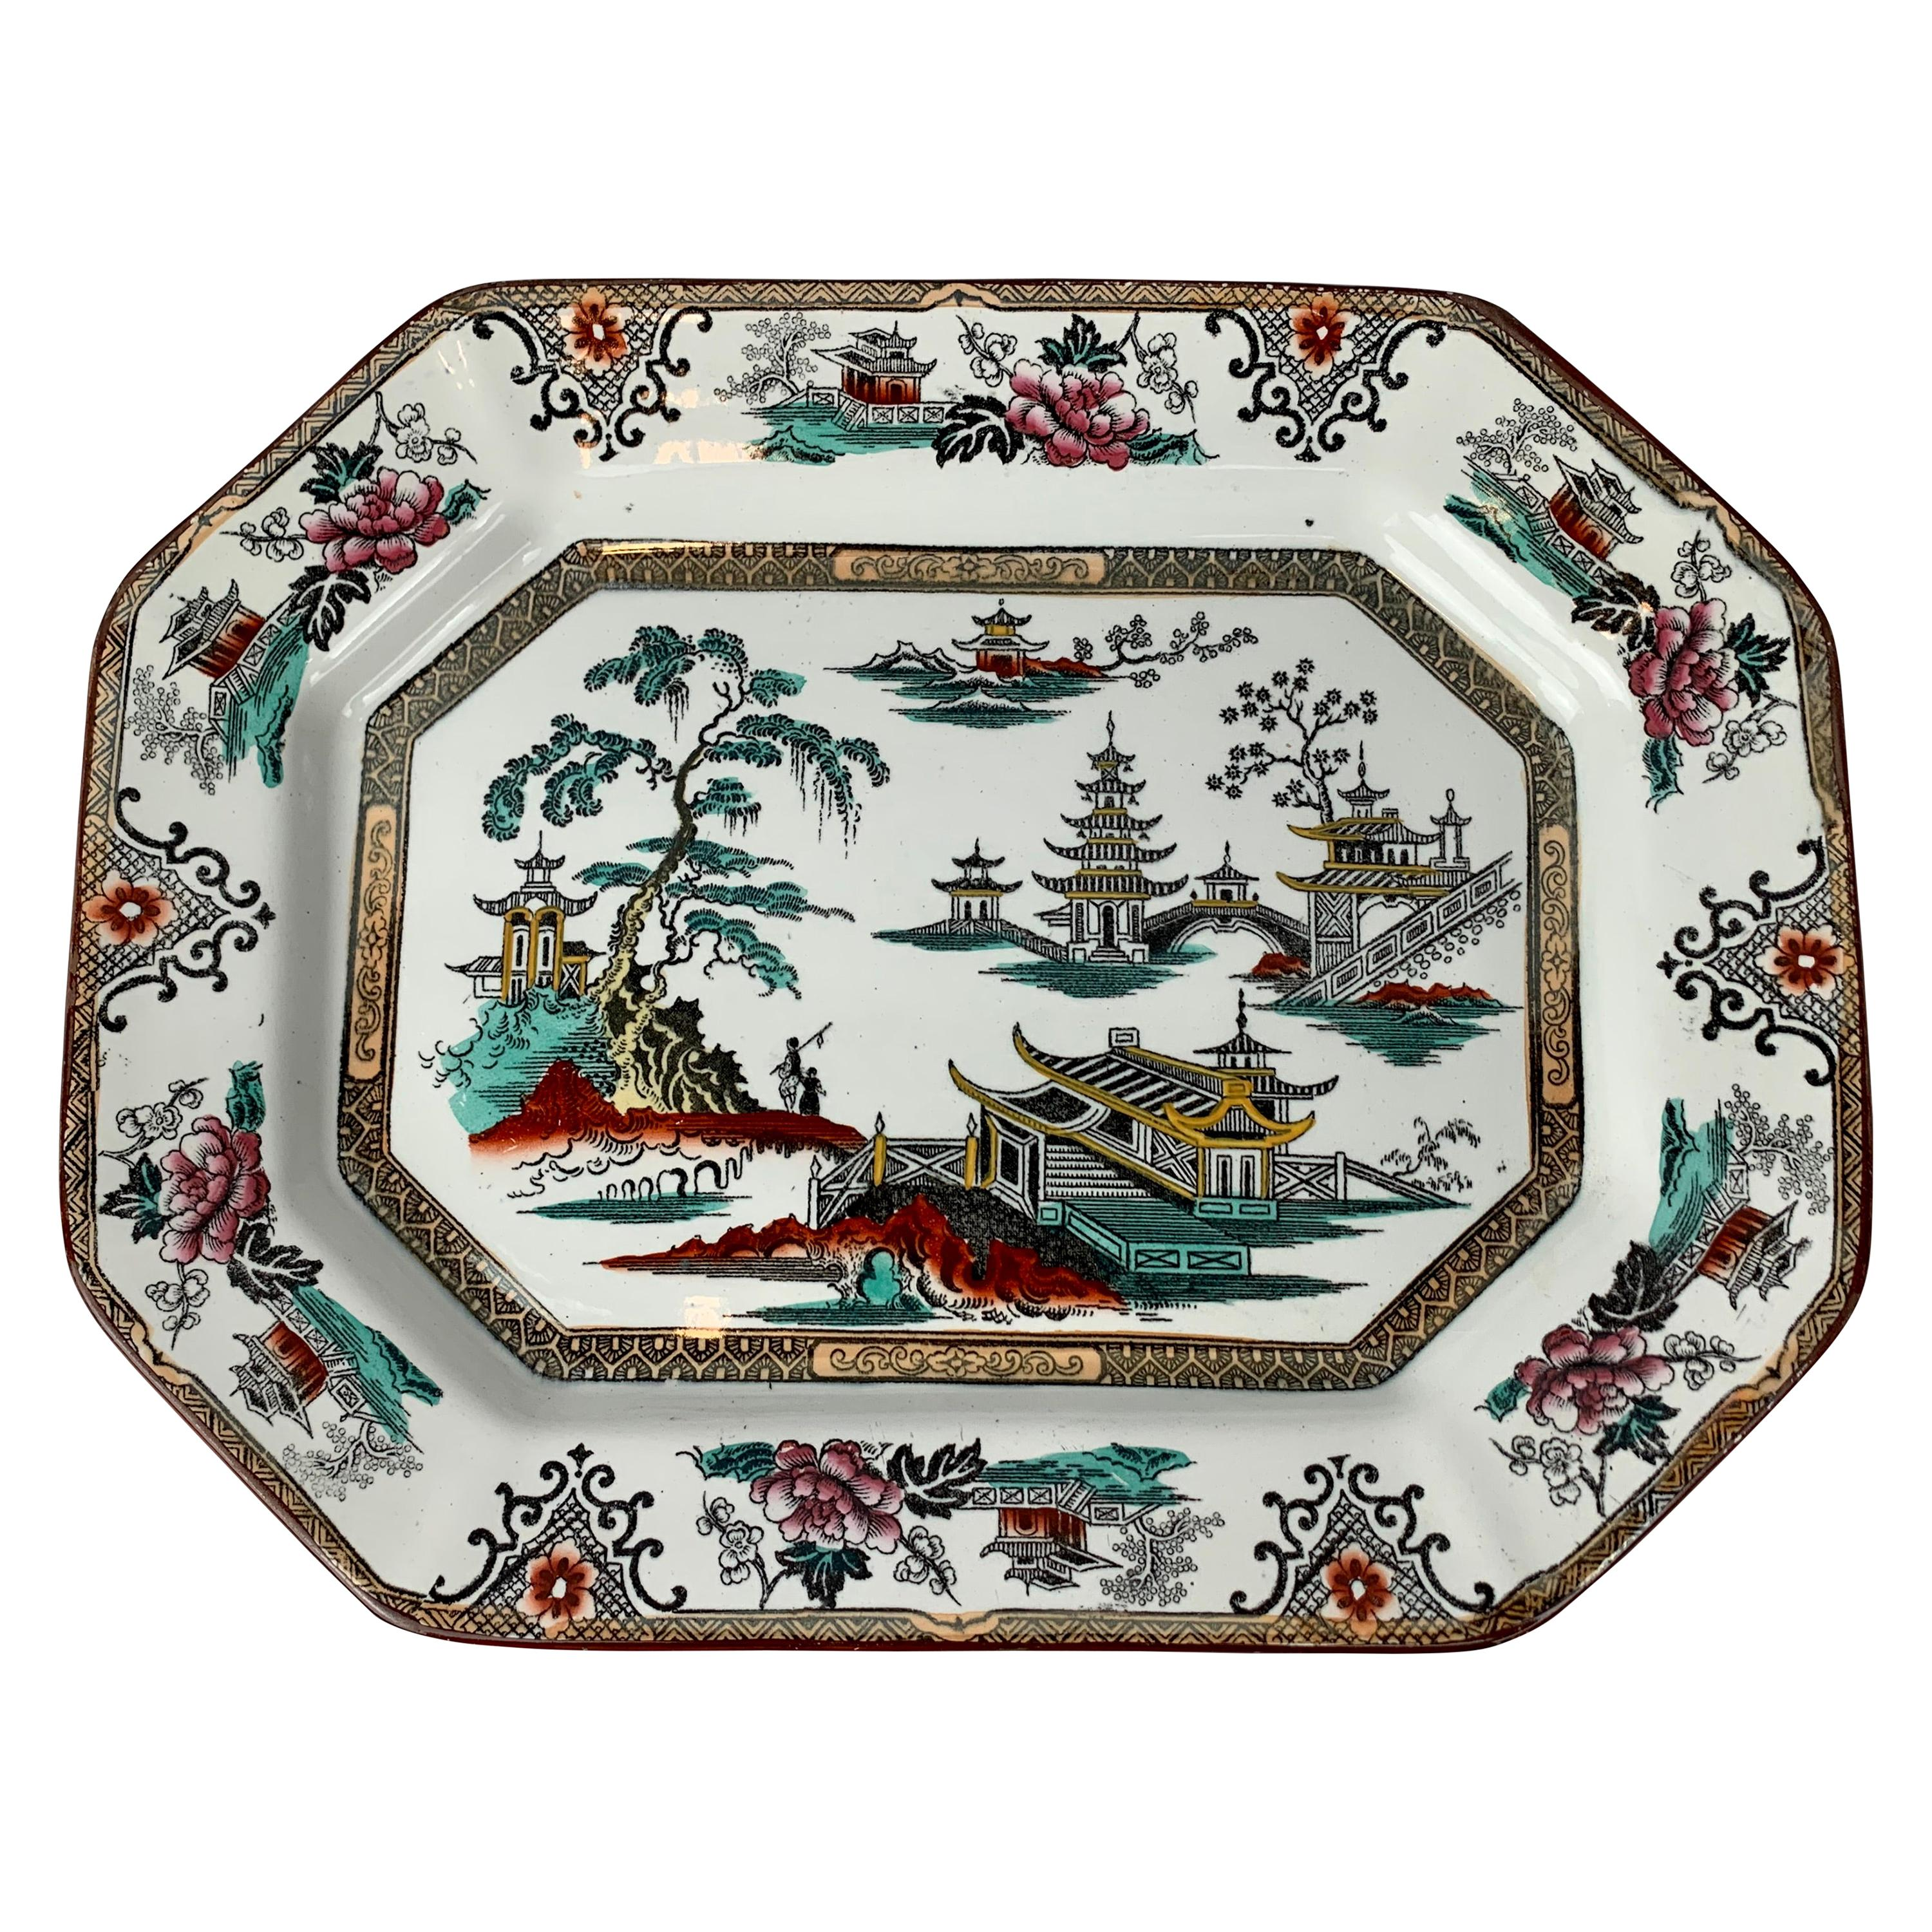 English Ironstone Platter with Cut Corners and Chinoiserie Scenes